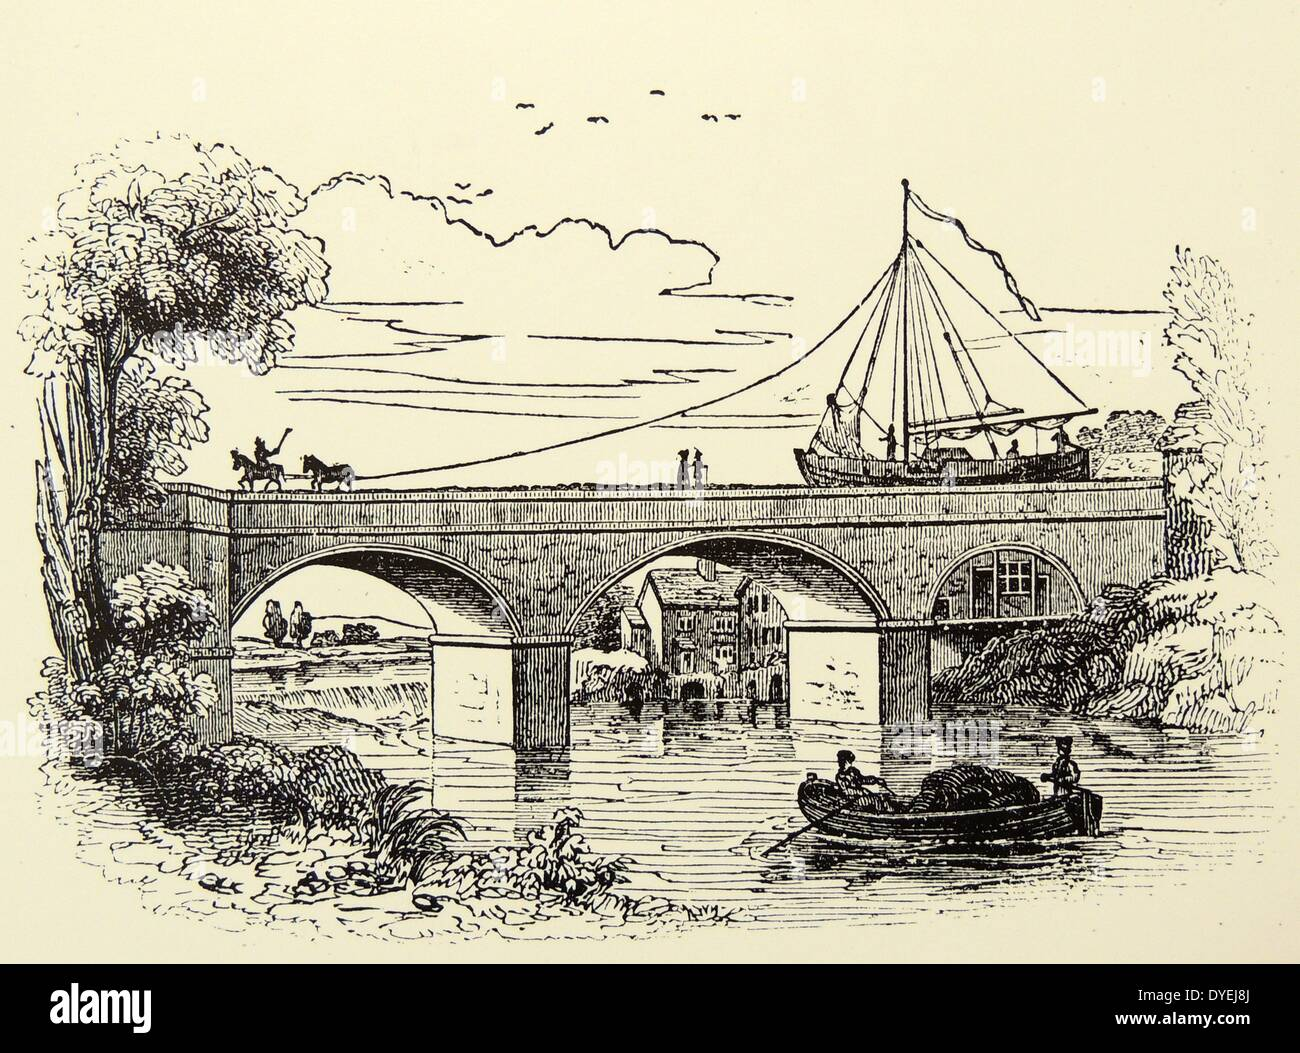 Horse-drawn barge crossing on the Barton viaduct over the river Irwell on the Duke of Bridgewater's canal, built by James Bindley. Engraving, London, 1836. Stock Photo